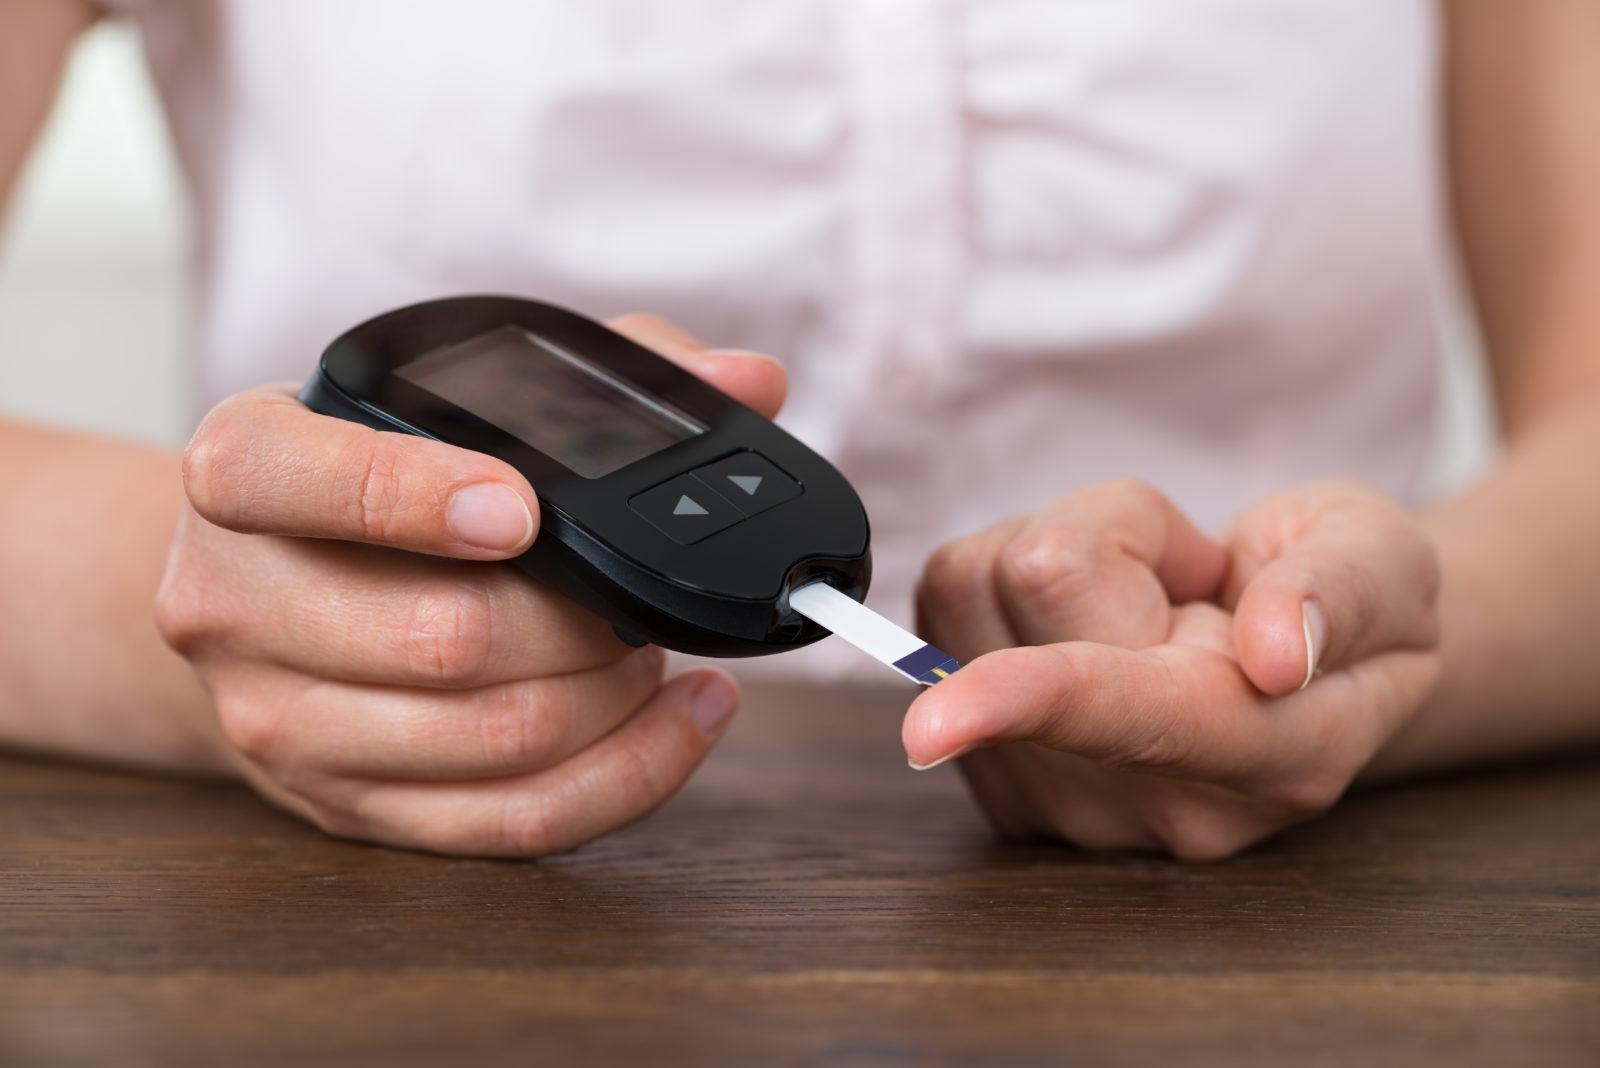 Is Your Fasting Blood Glucose Higher On Low Carb Or Keto? Five Things To Know